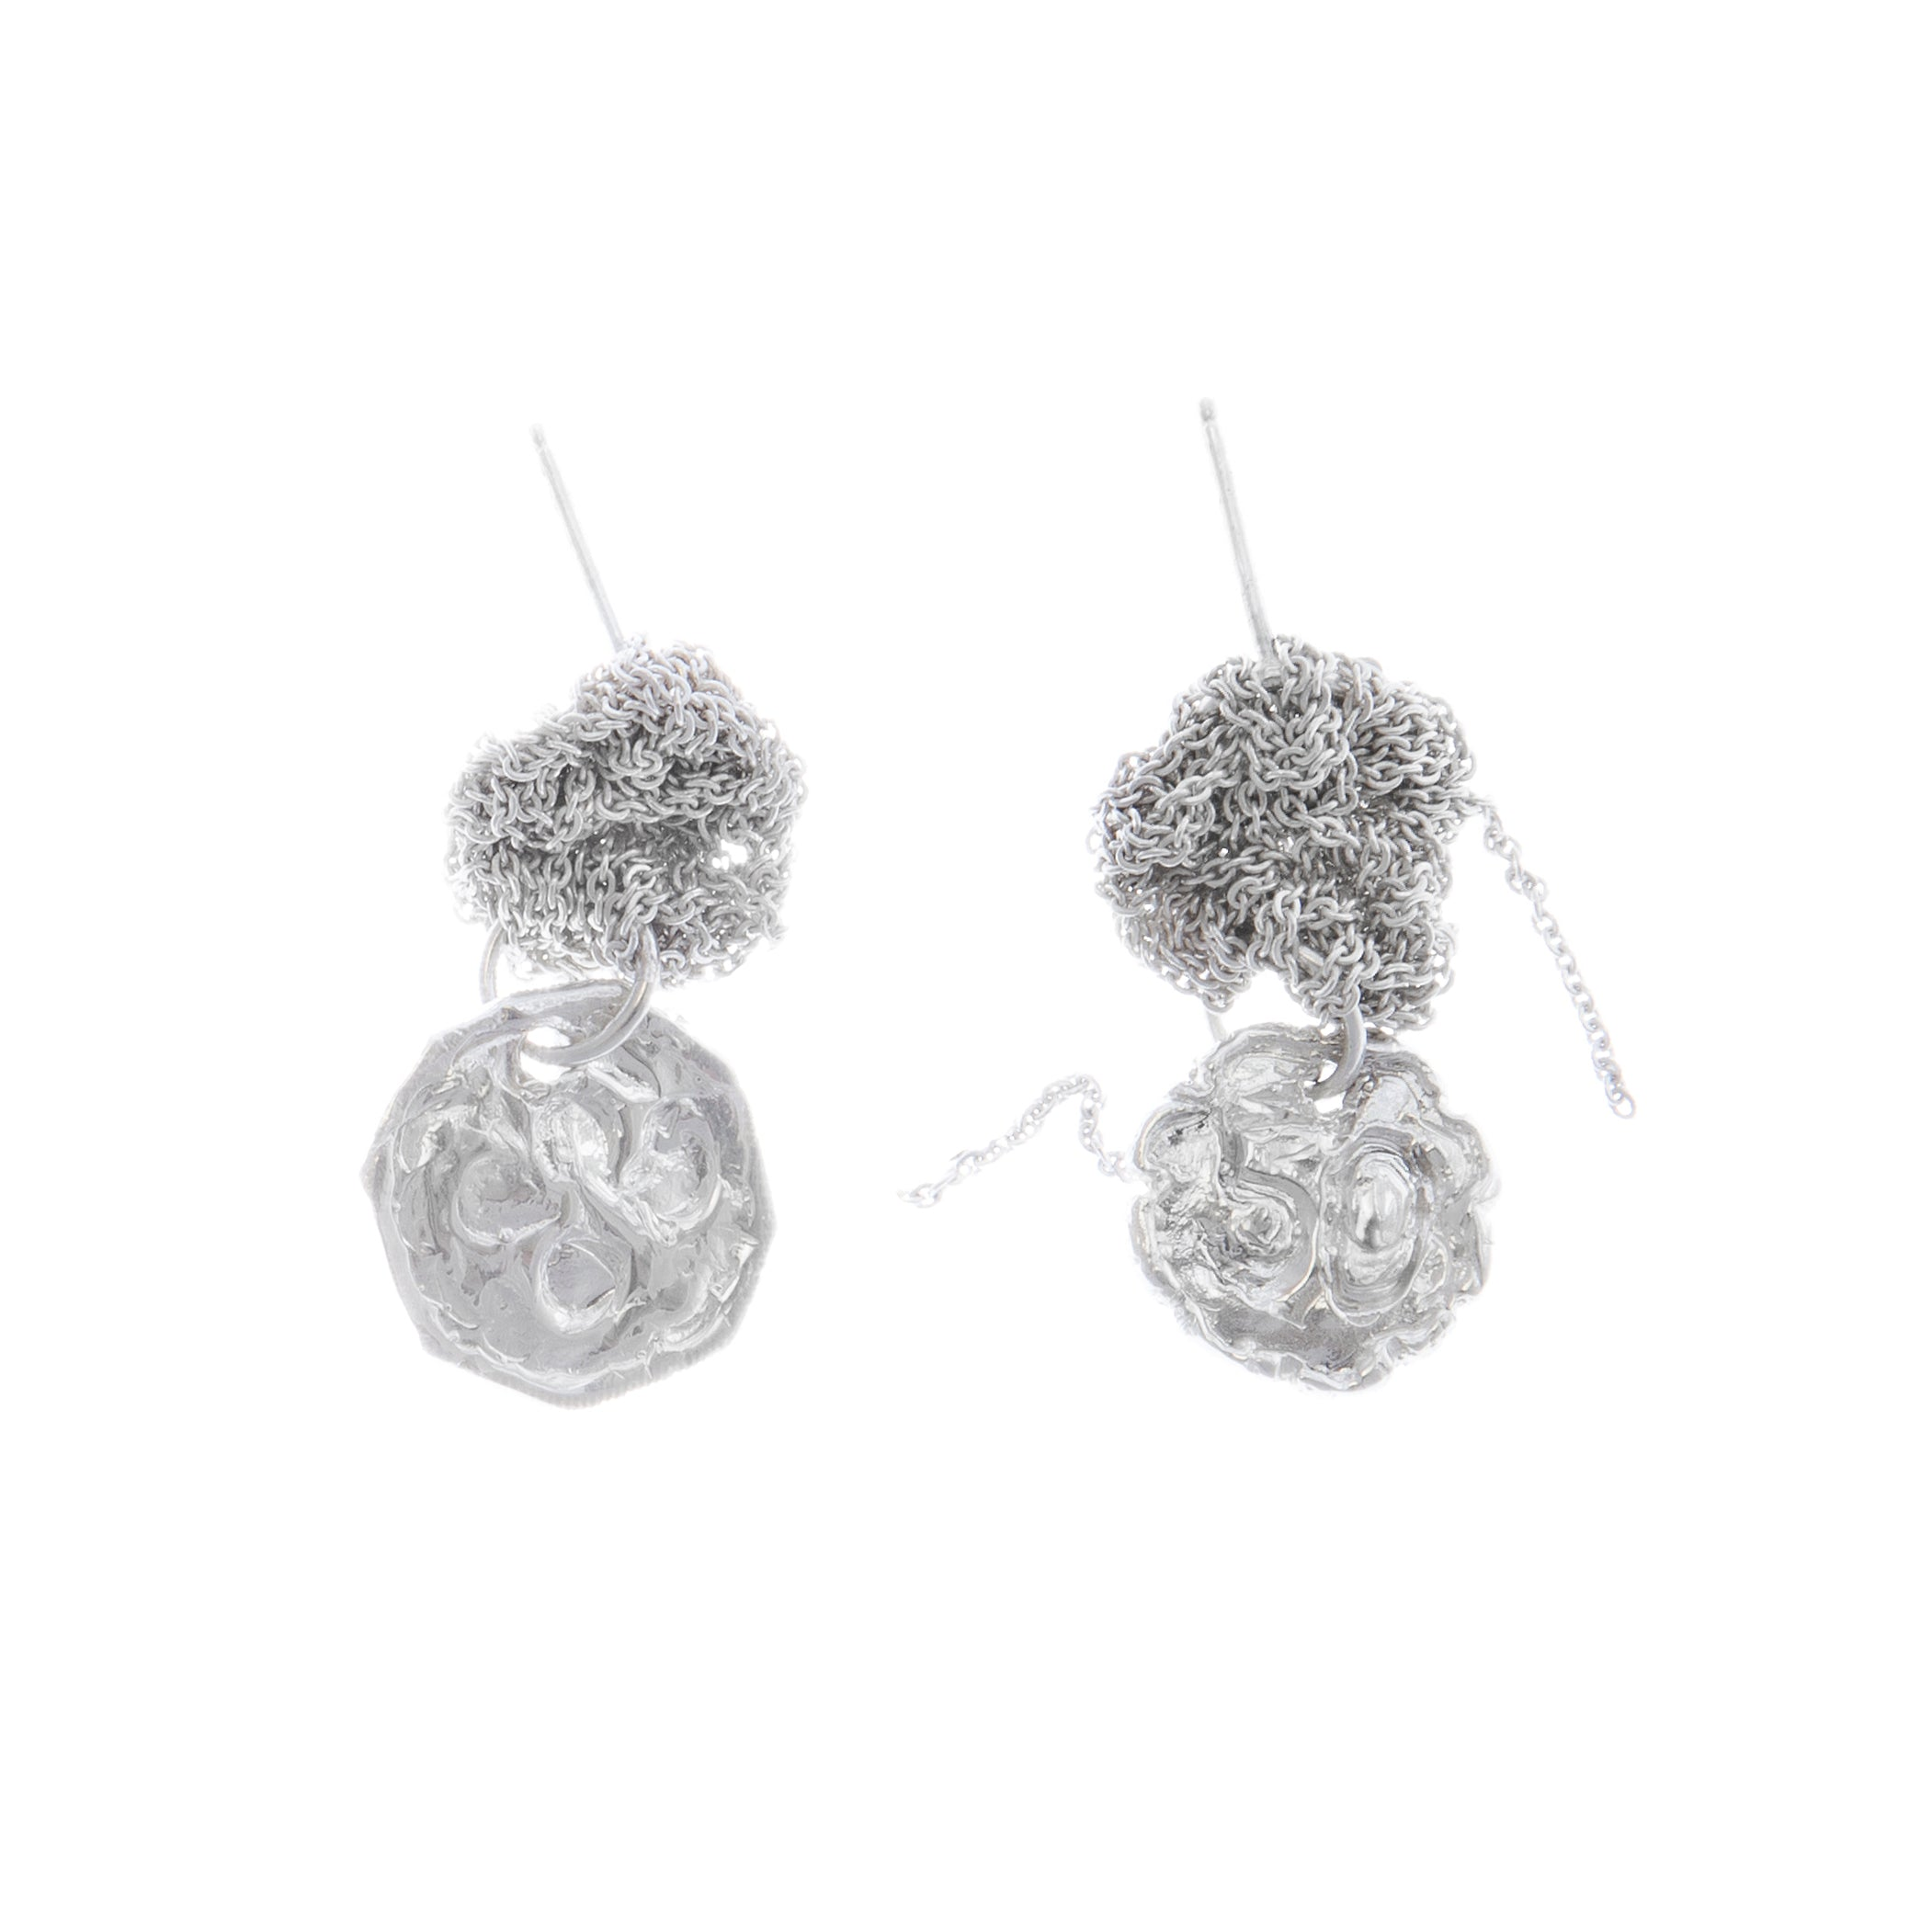 Currency Earrings in Silver